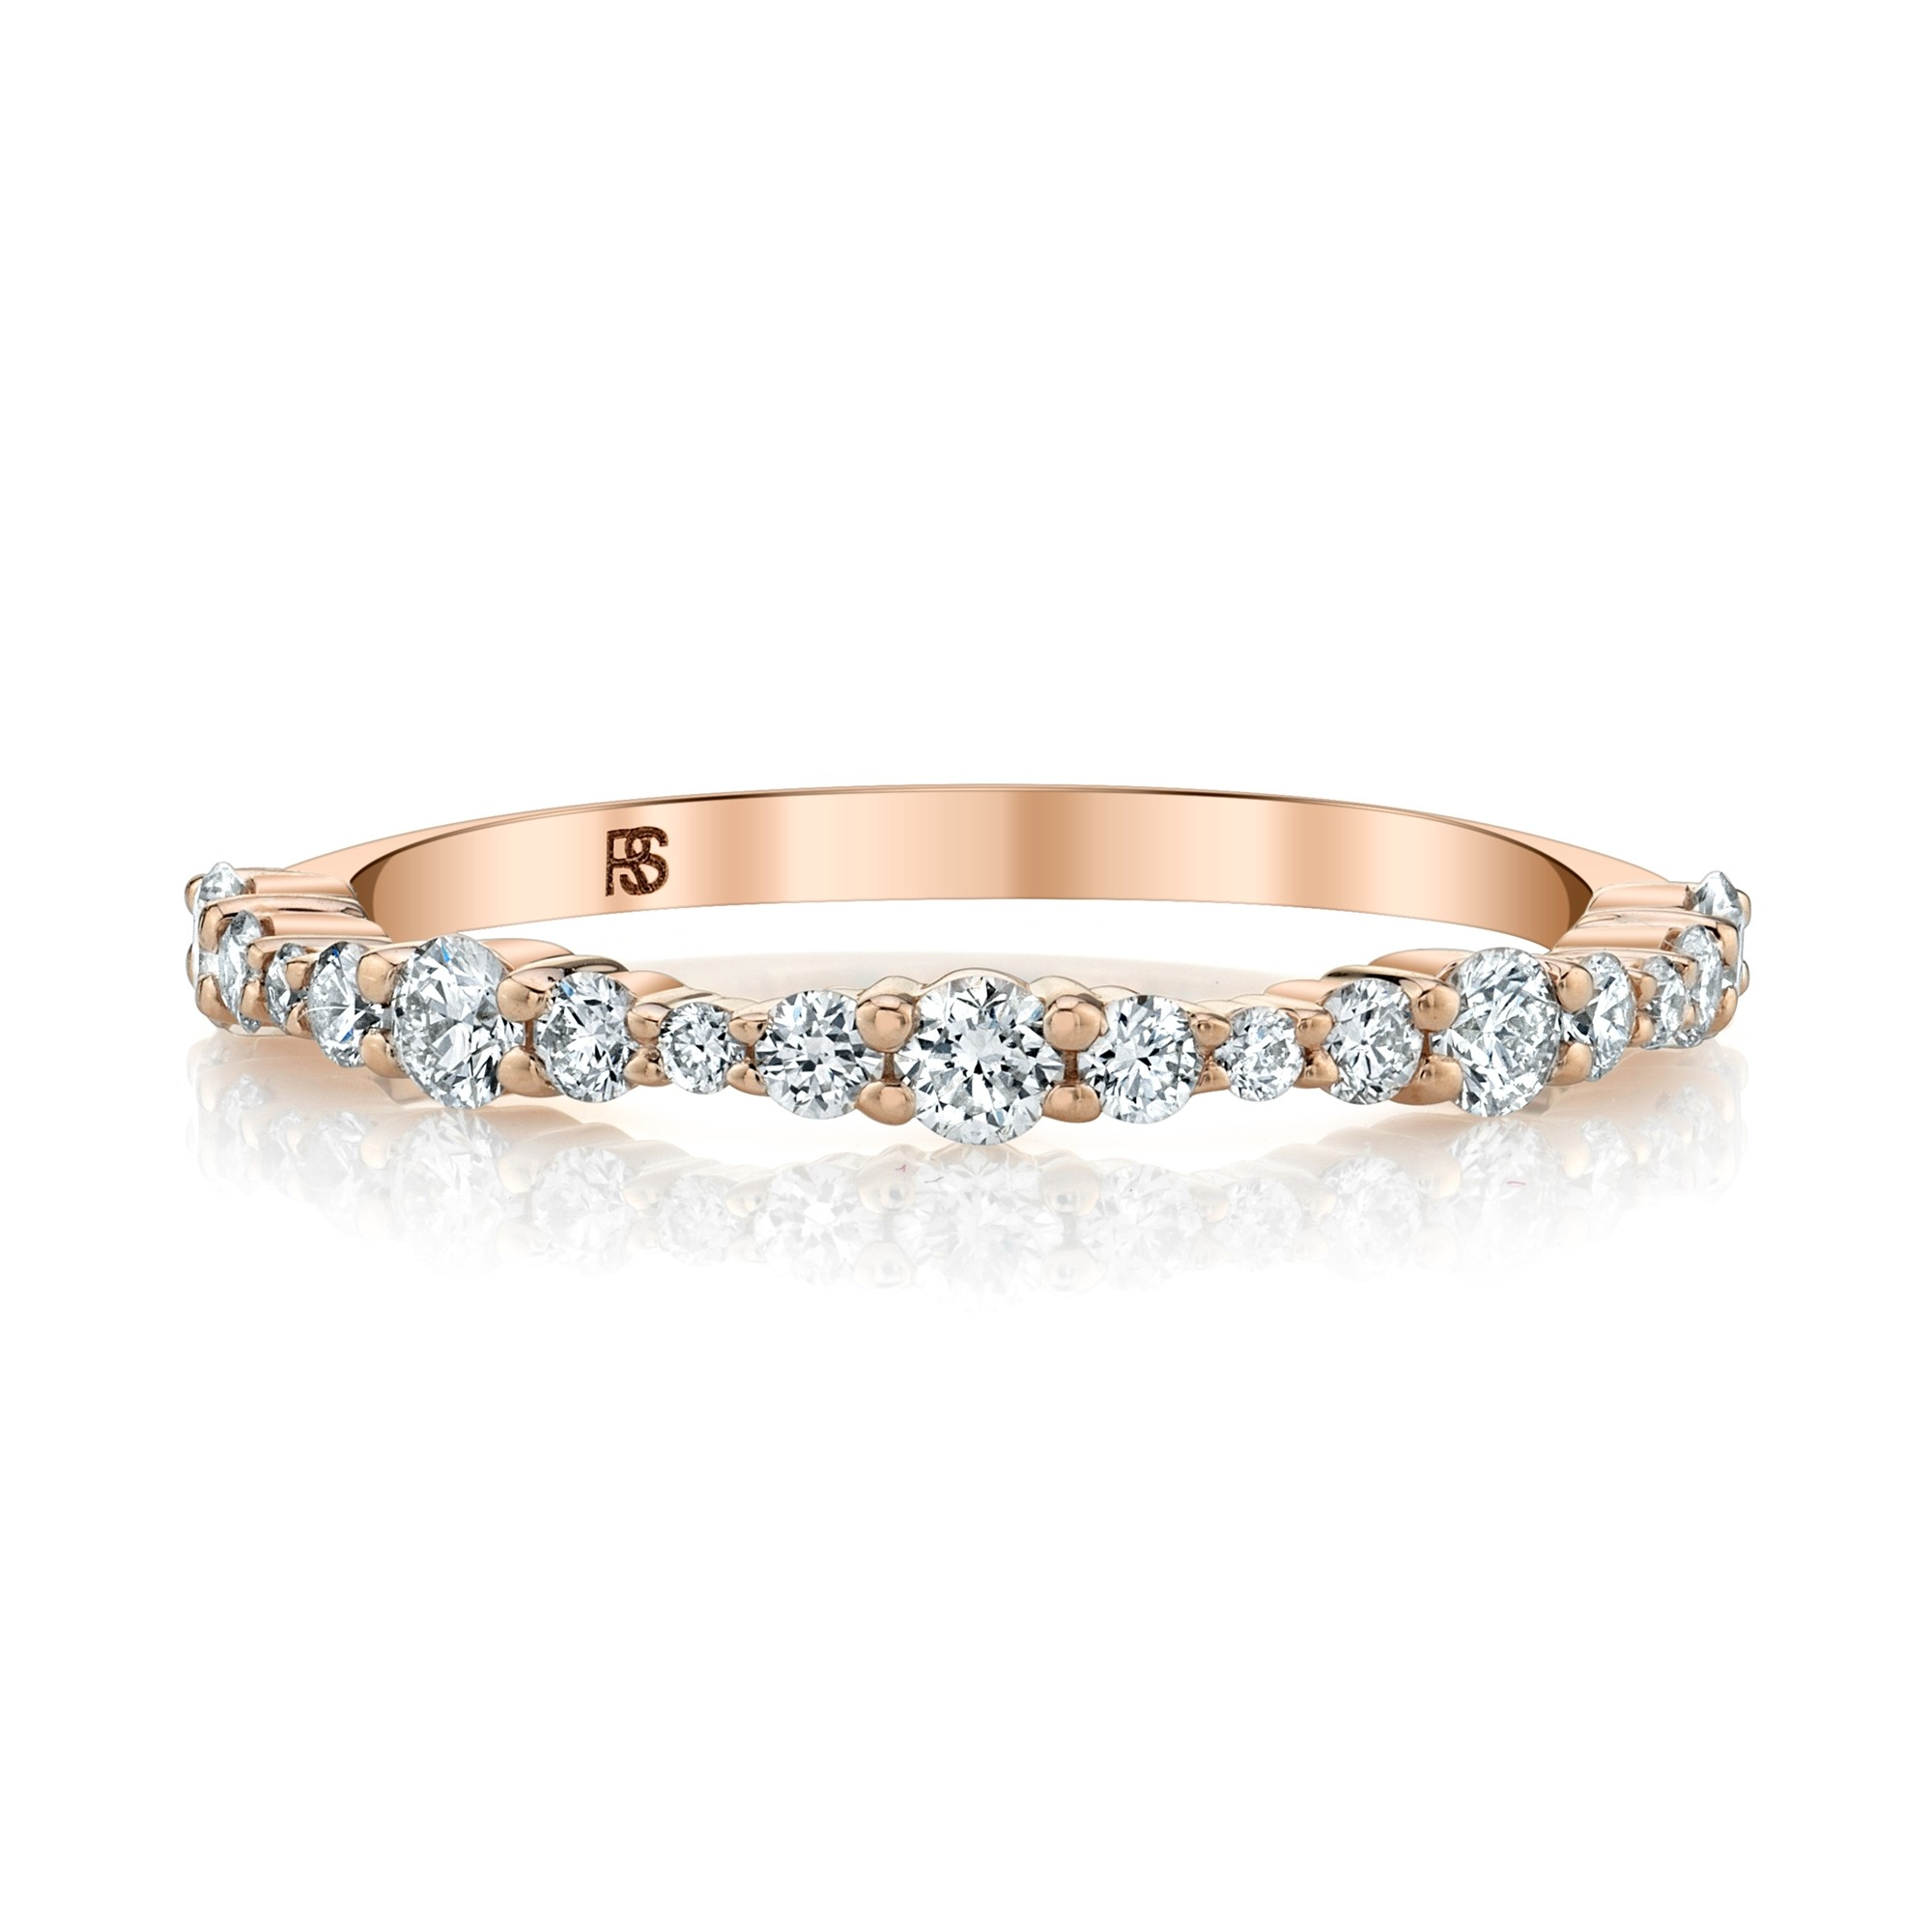 14k Rose Gold Graduated Shared Prong Ring